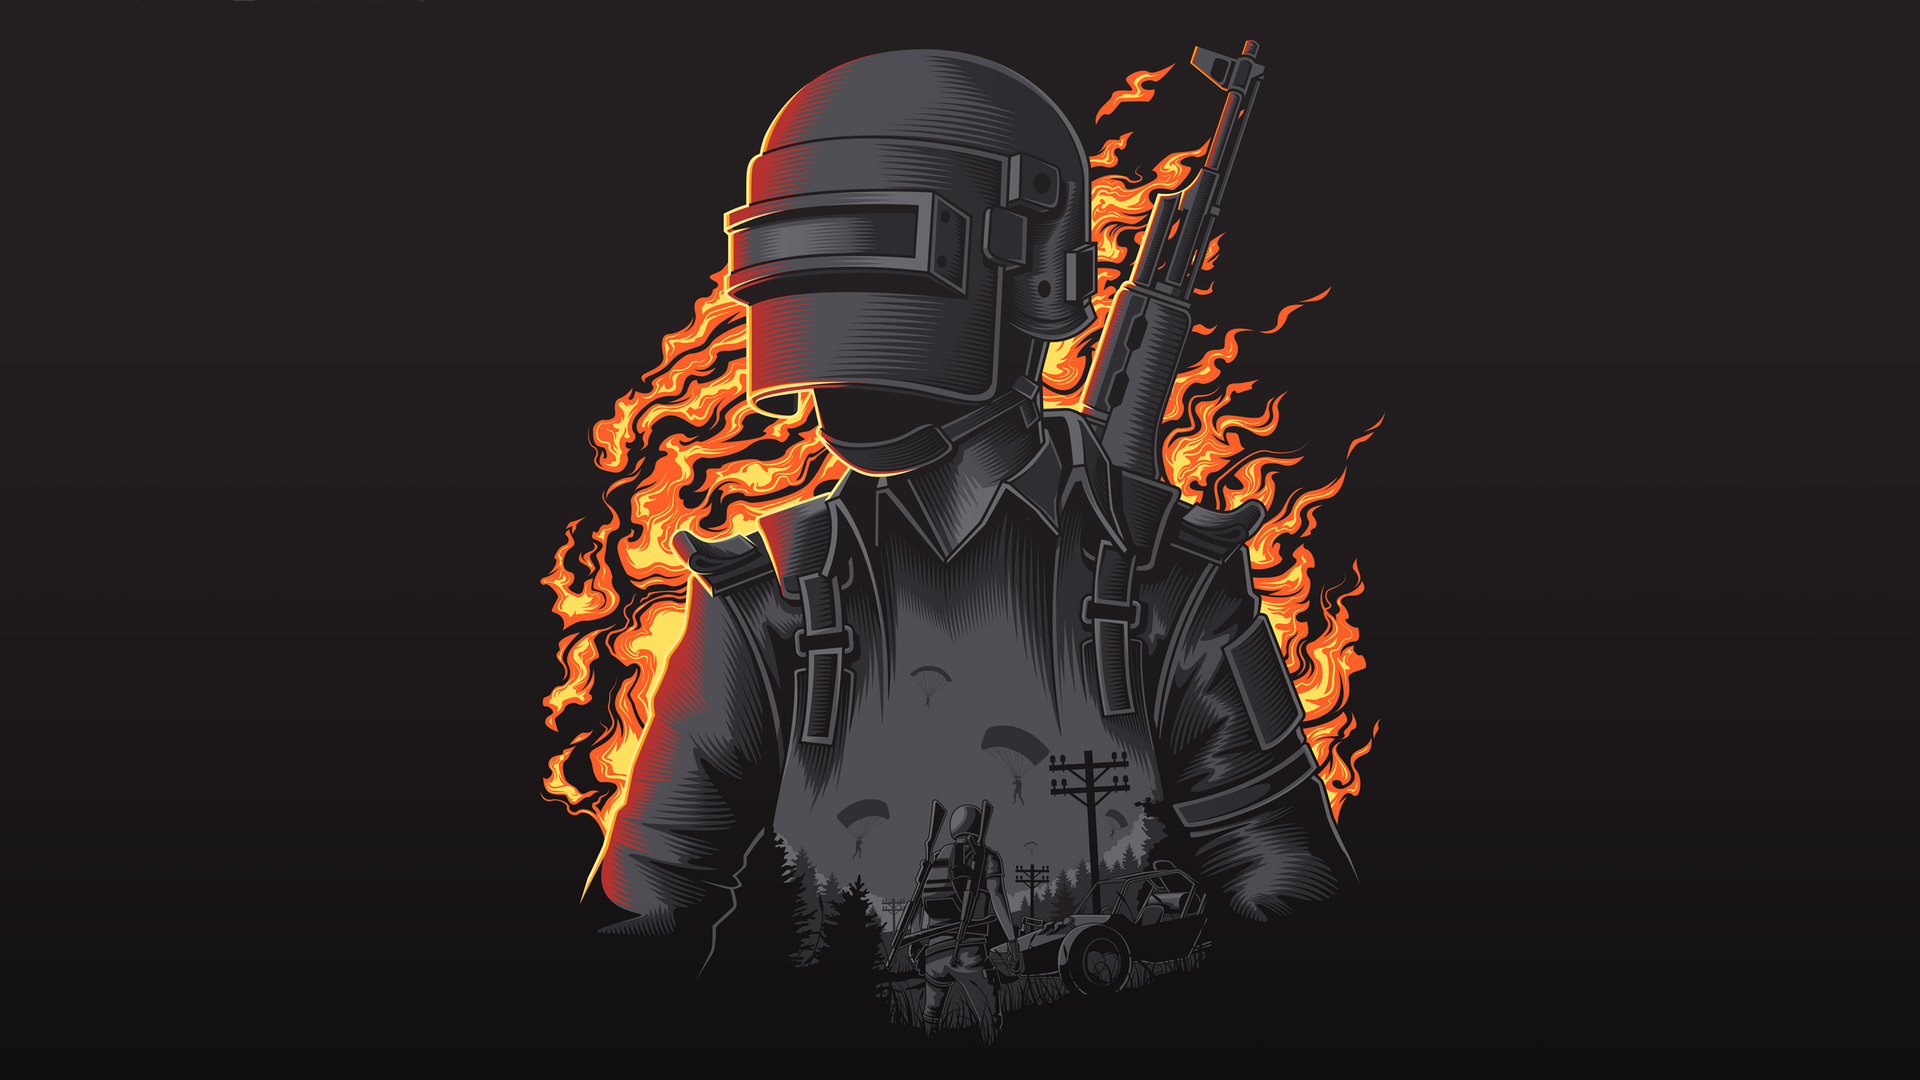 1920x1080 Pubg Artwork 4k Laptop Full Hd 1080p Hd 4k: 1920x1080 Pubg Illustration 4k Laptop Full HD 1080P HD 4k